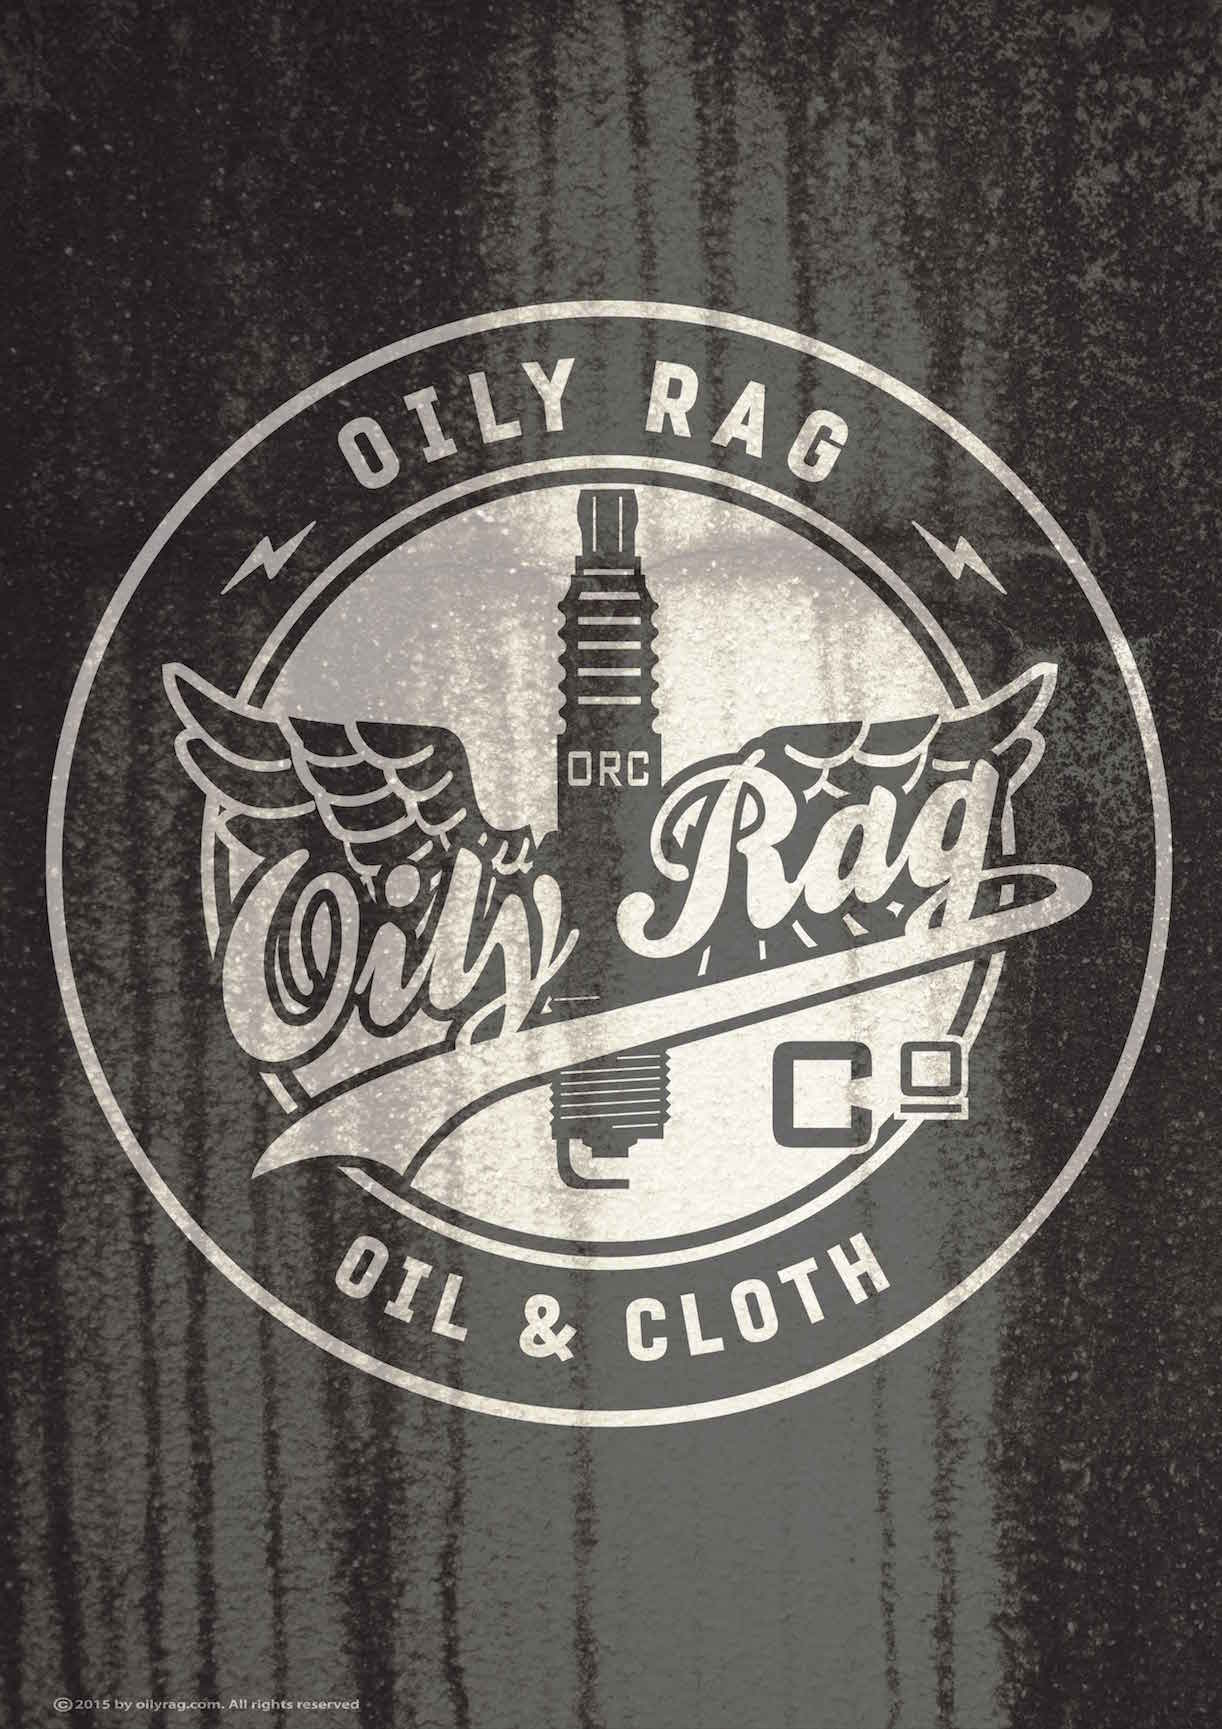 Oily Rag Clothing Oil and Cloth retro motorcycle alloy sign